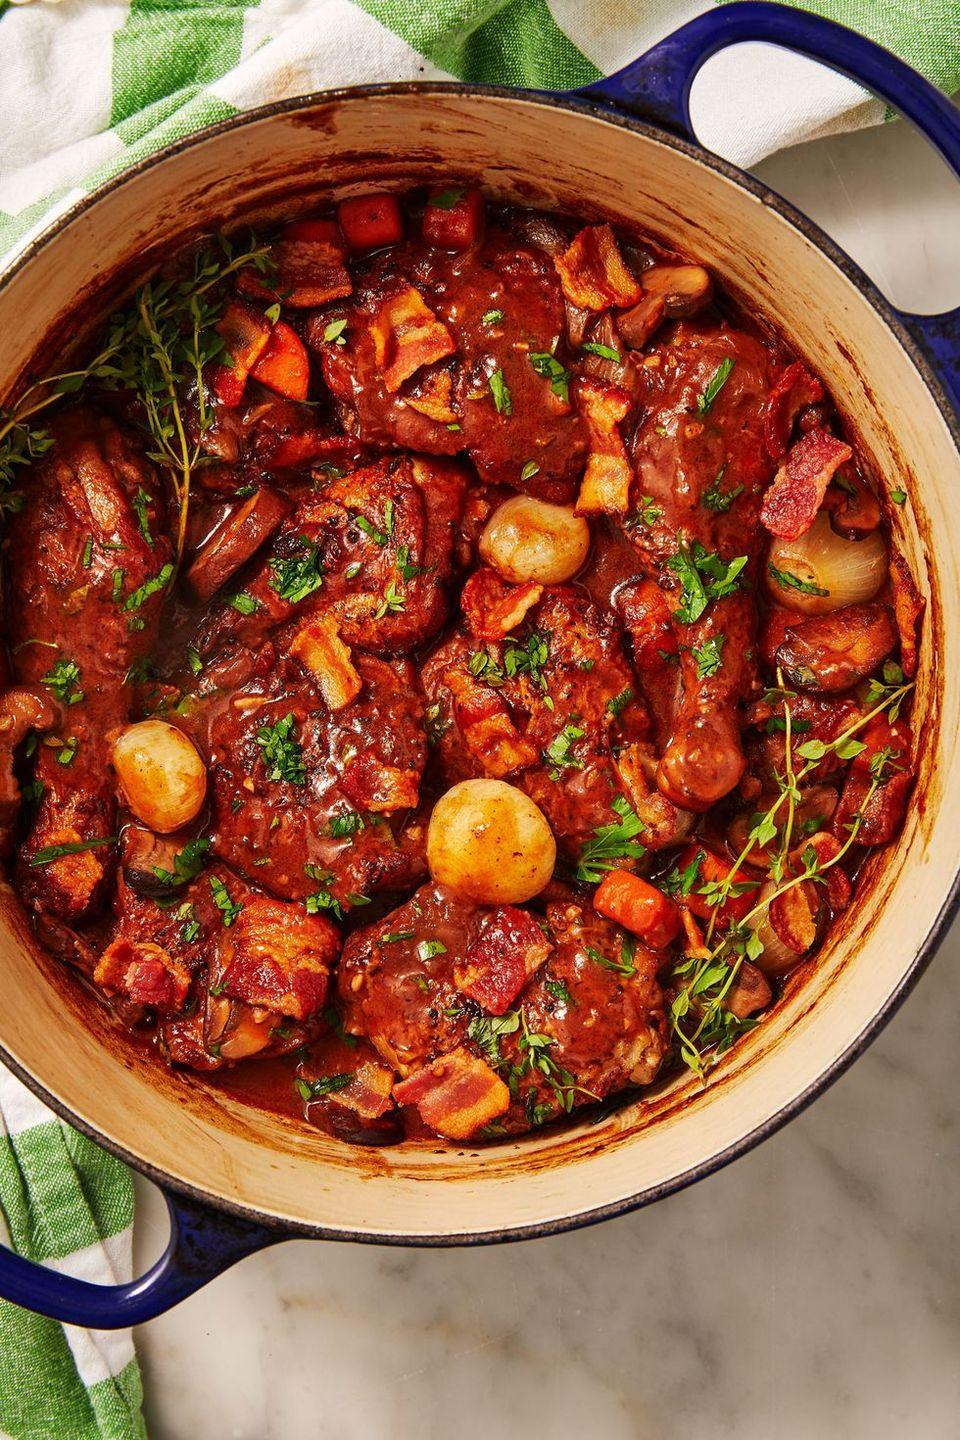 """<p>Coq Au Vin is a classic French dish that isn't as complicated as it sounds. Chicken is braised in a silky wine sauce and finished off with butter for the most perfect sauce. Use a nice red wine here and even better if it's from Burgundy! </p><p>Get the <a href=""""https://www.delish.com/uk/cooking/recipes/a35505456/coq-au-vin-recipe/"""" rel=""""nofollow noopener"""" target=""""_blank"""" data-ylk=""""slk:Coq Au Vin"""" class=""""link rapid-noclick-resp"""">Coq Au Vin</a> recipe.</p>"""